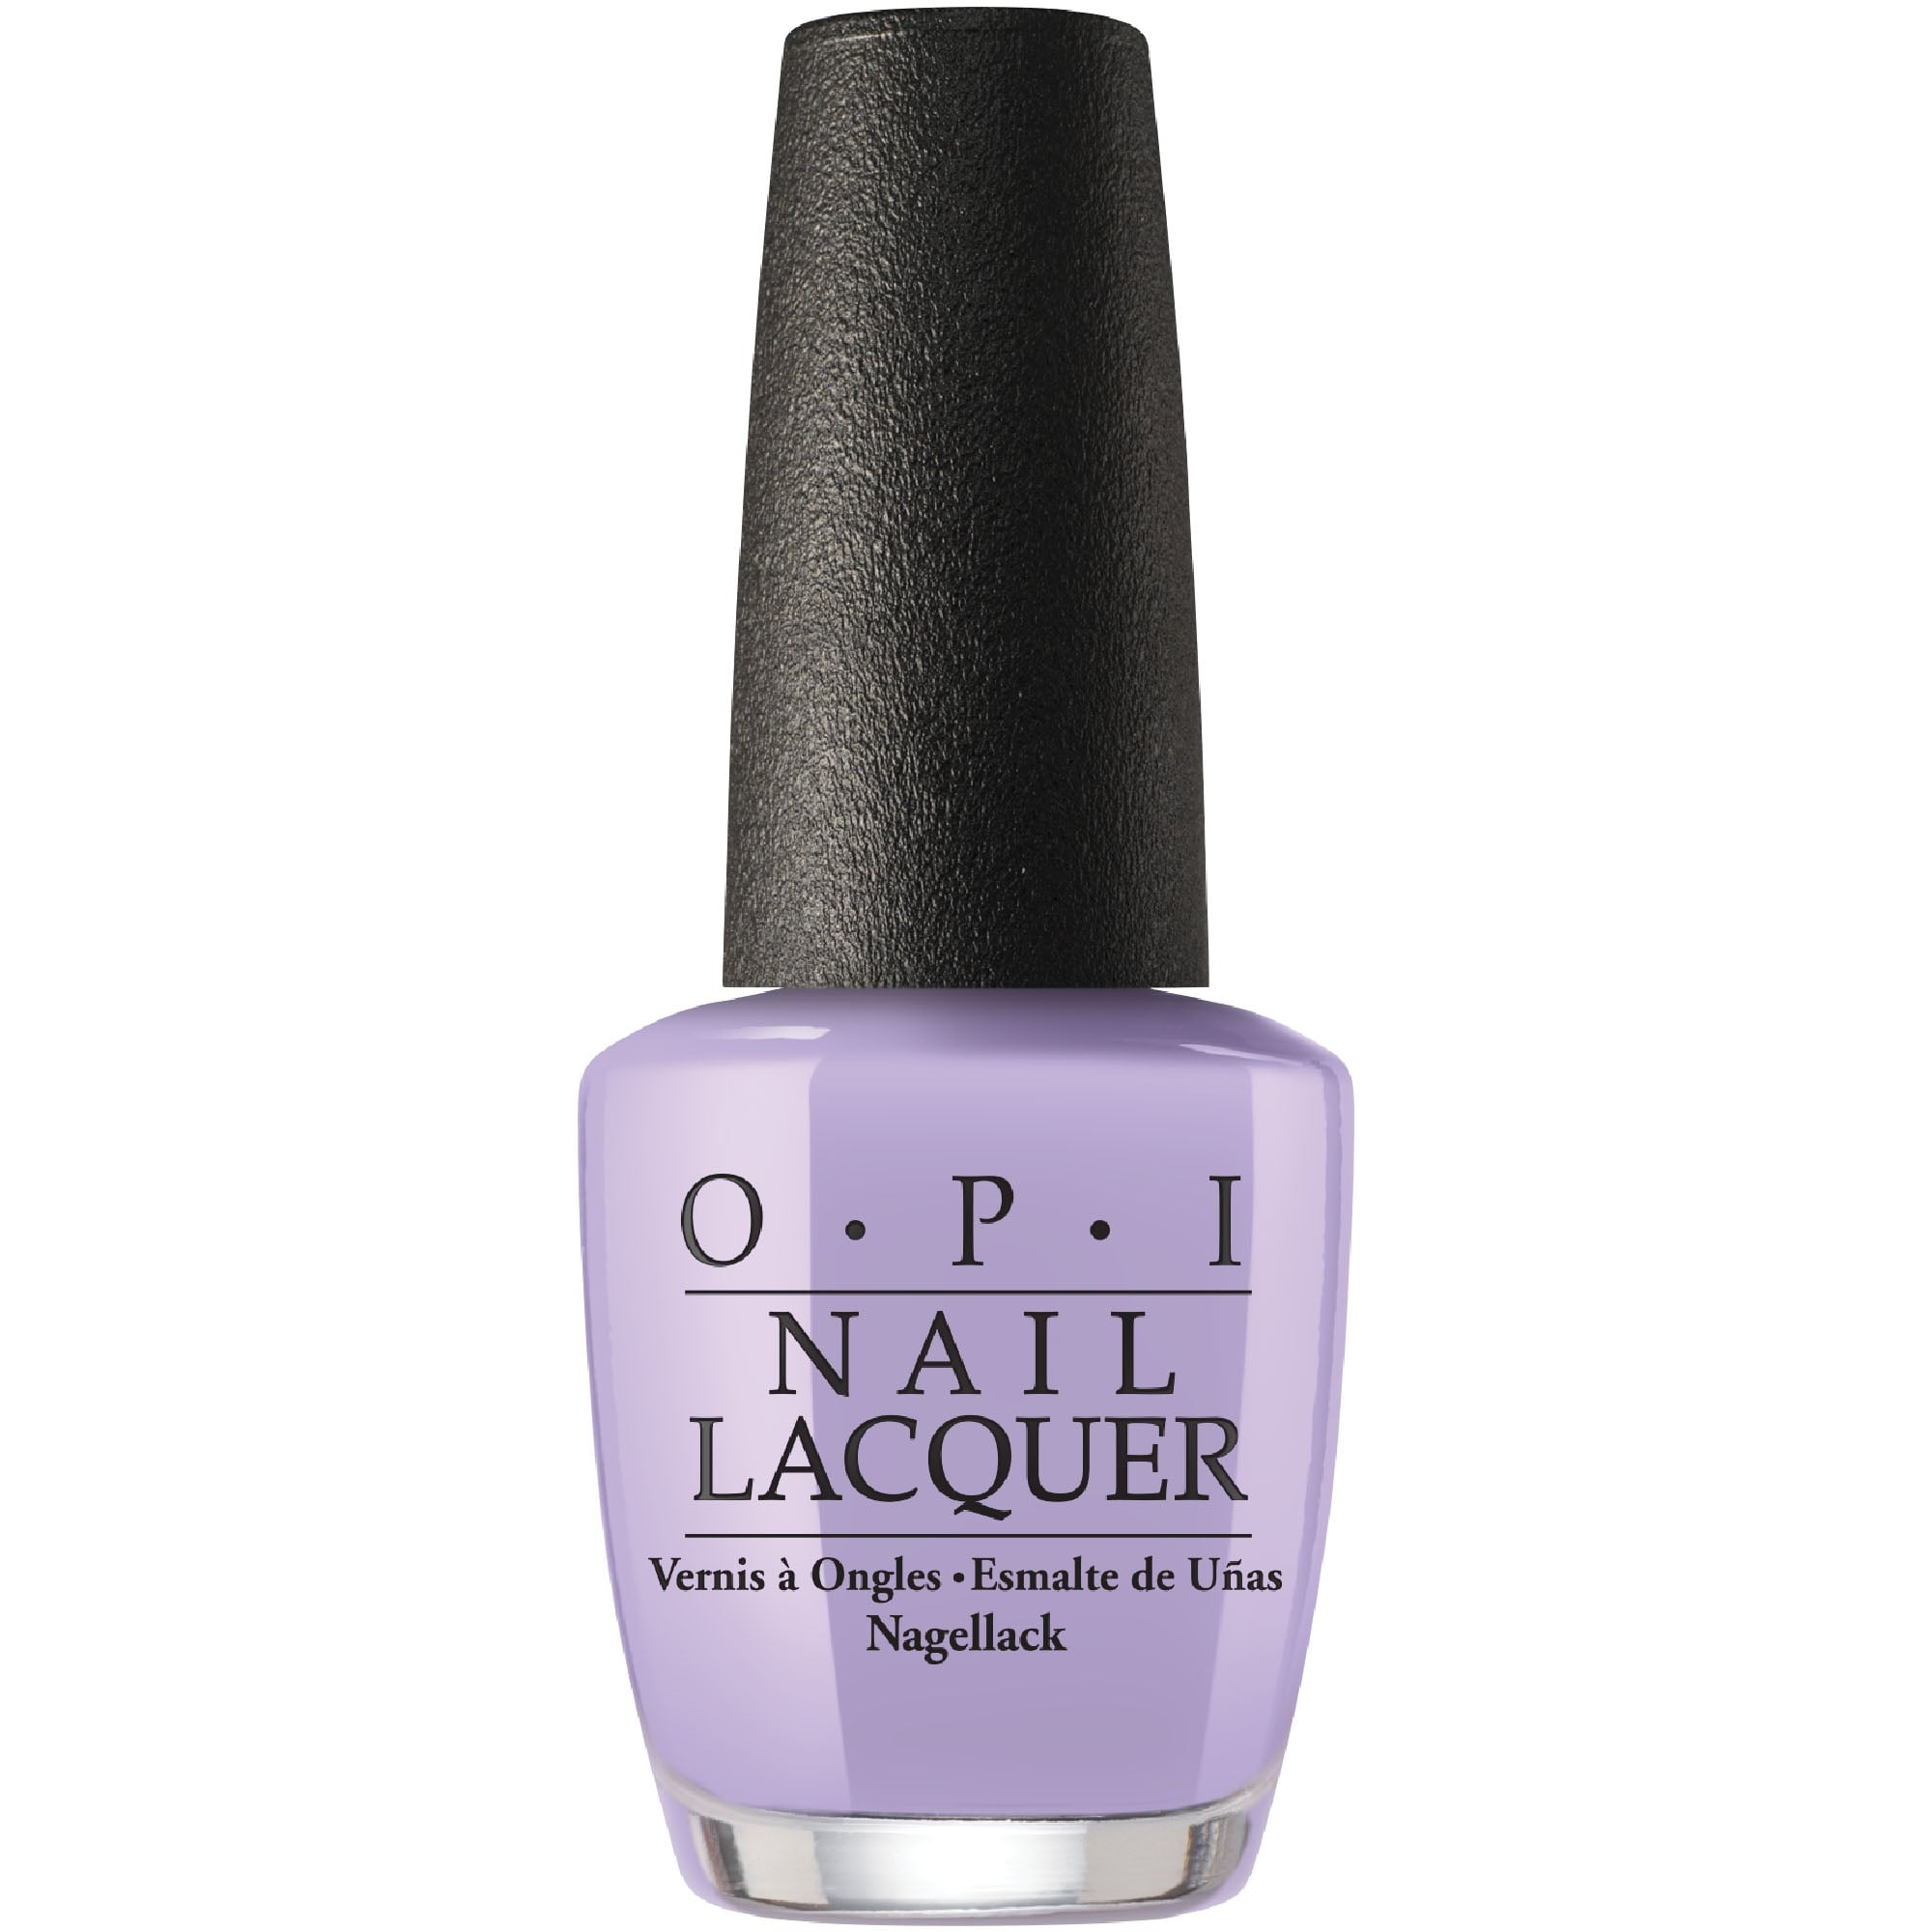 OPI Fiji Nail Polish Collection - Polly Want A Lacquer? (NL F83) 15ml